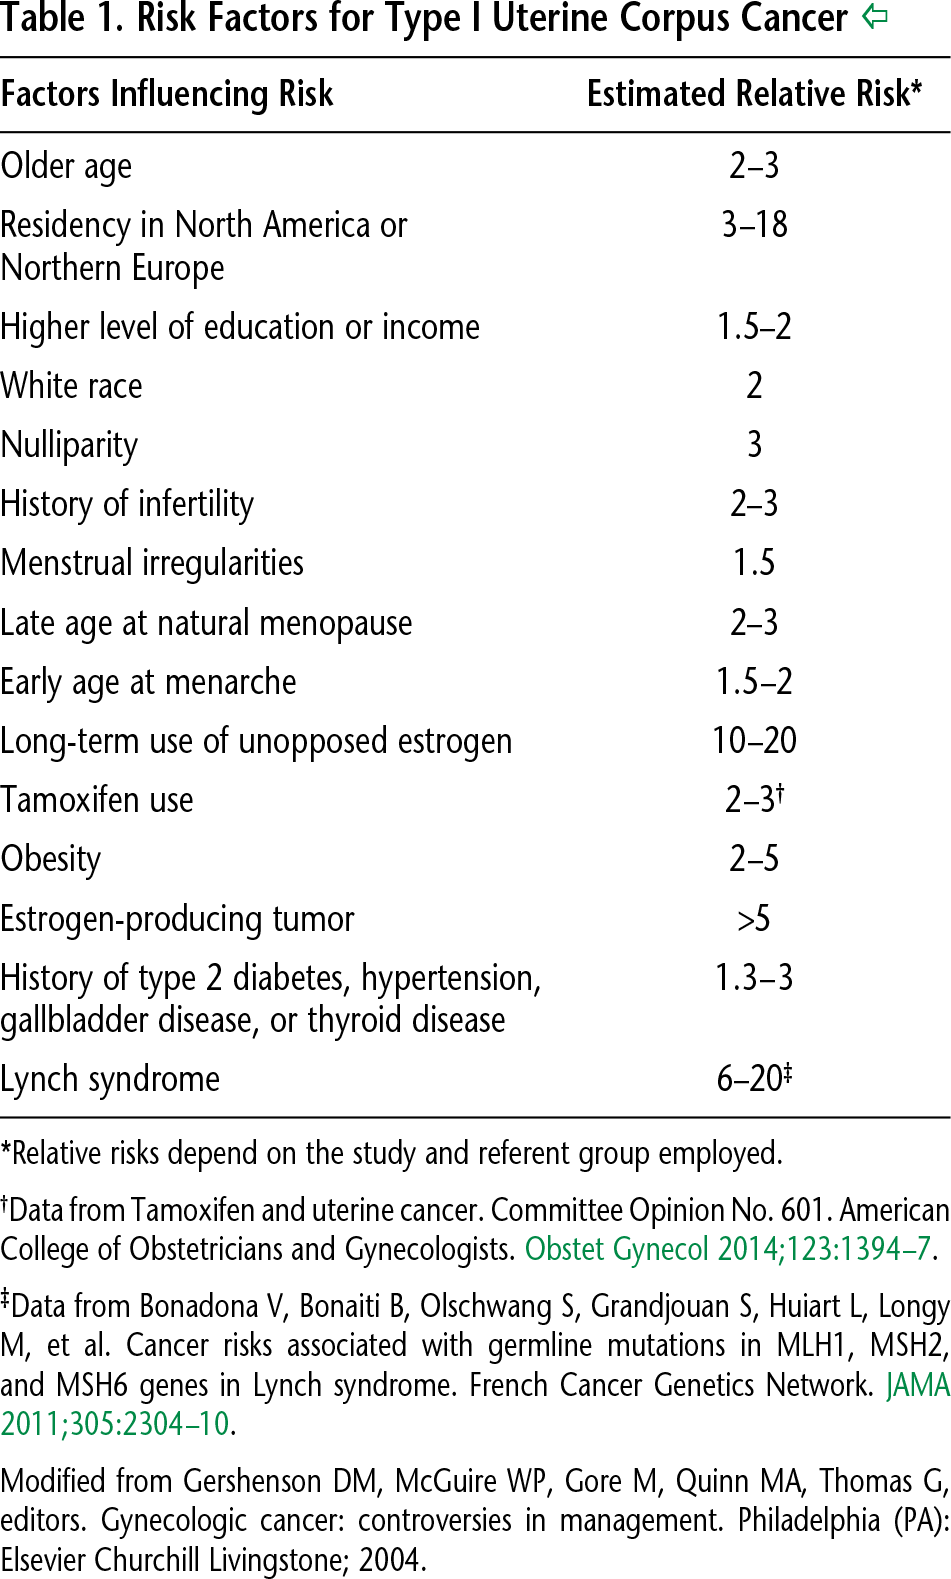 Table 1. Risk Factors for Type I Uterine Corpus Cancer